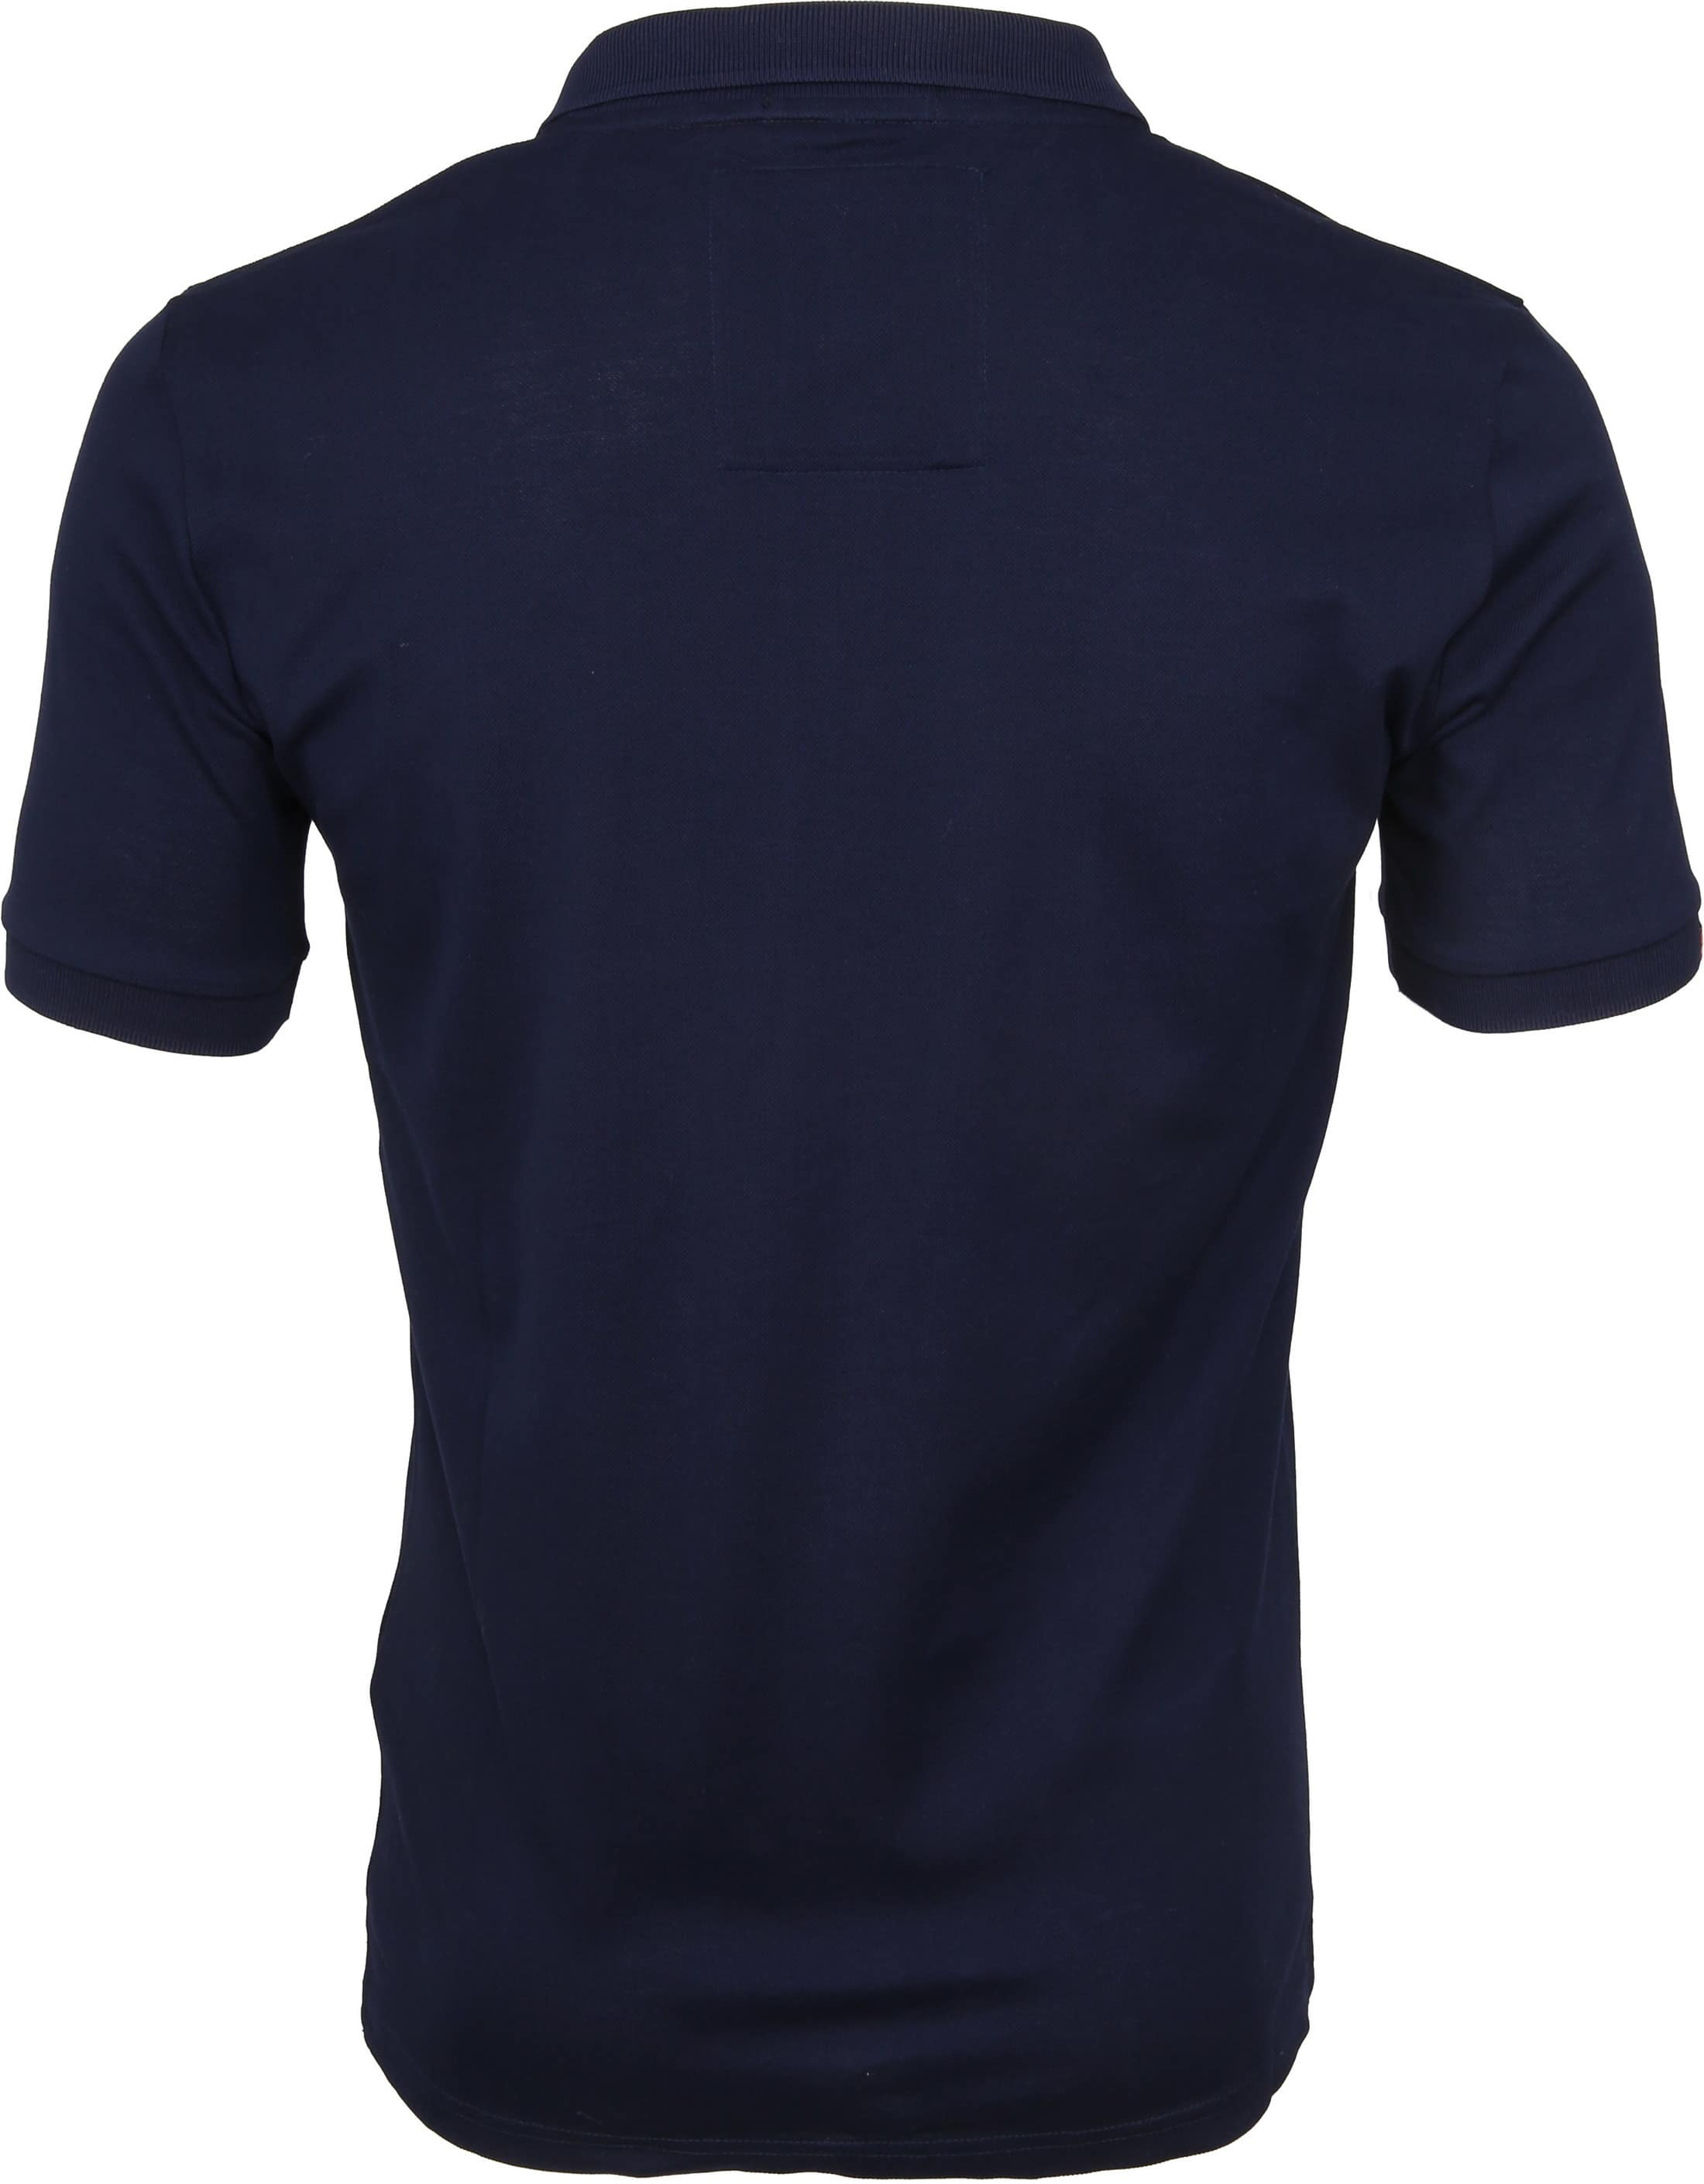 Superdry Poloshirt Mercerised Lite City Navy foto 3